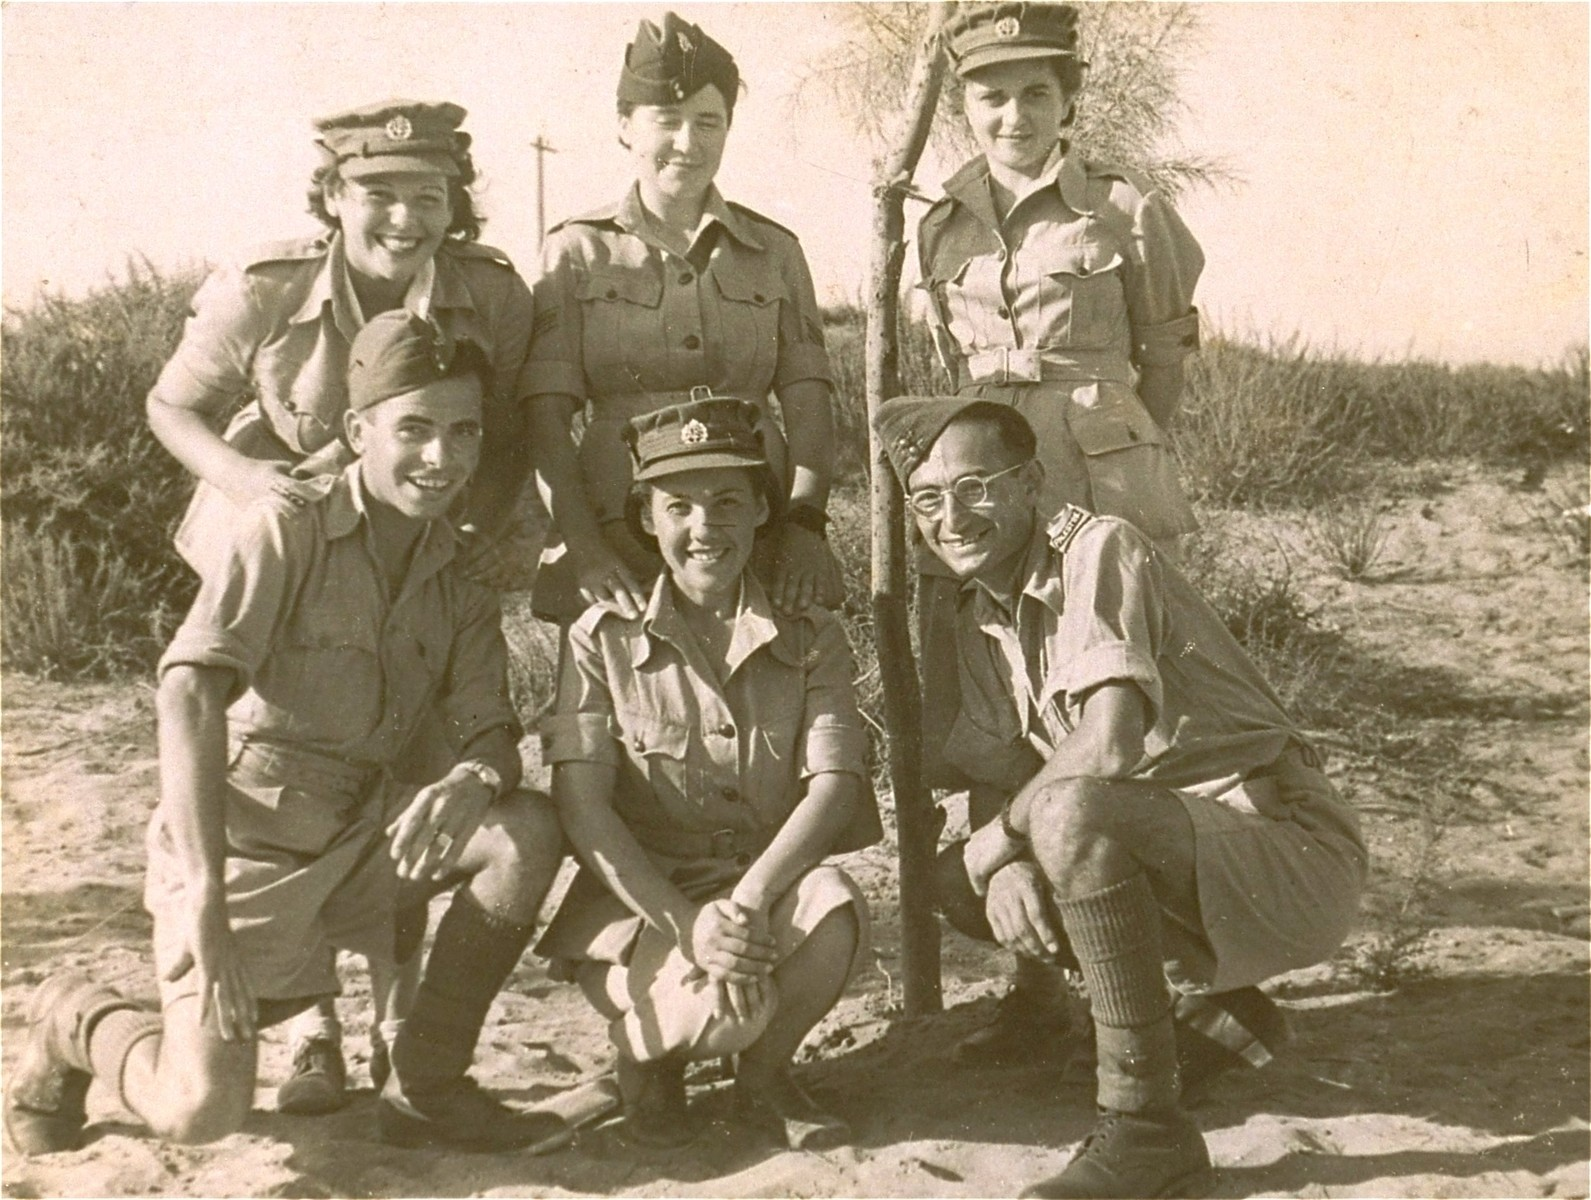 A group portrait of Jewish soldiers in the British army, during a furlough.